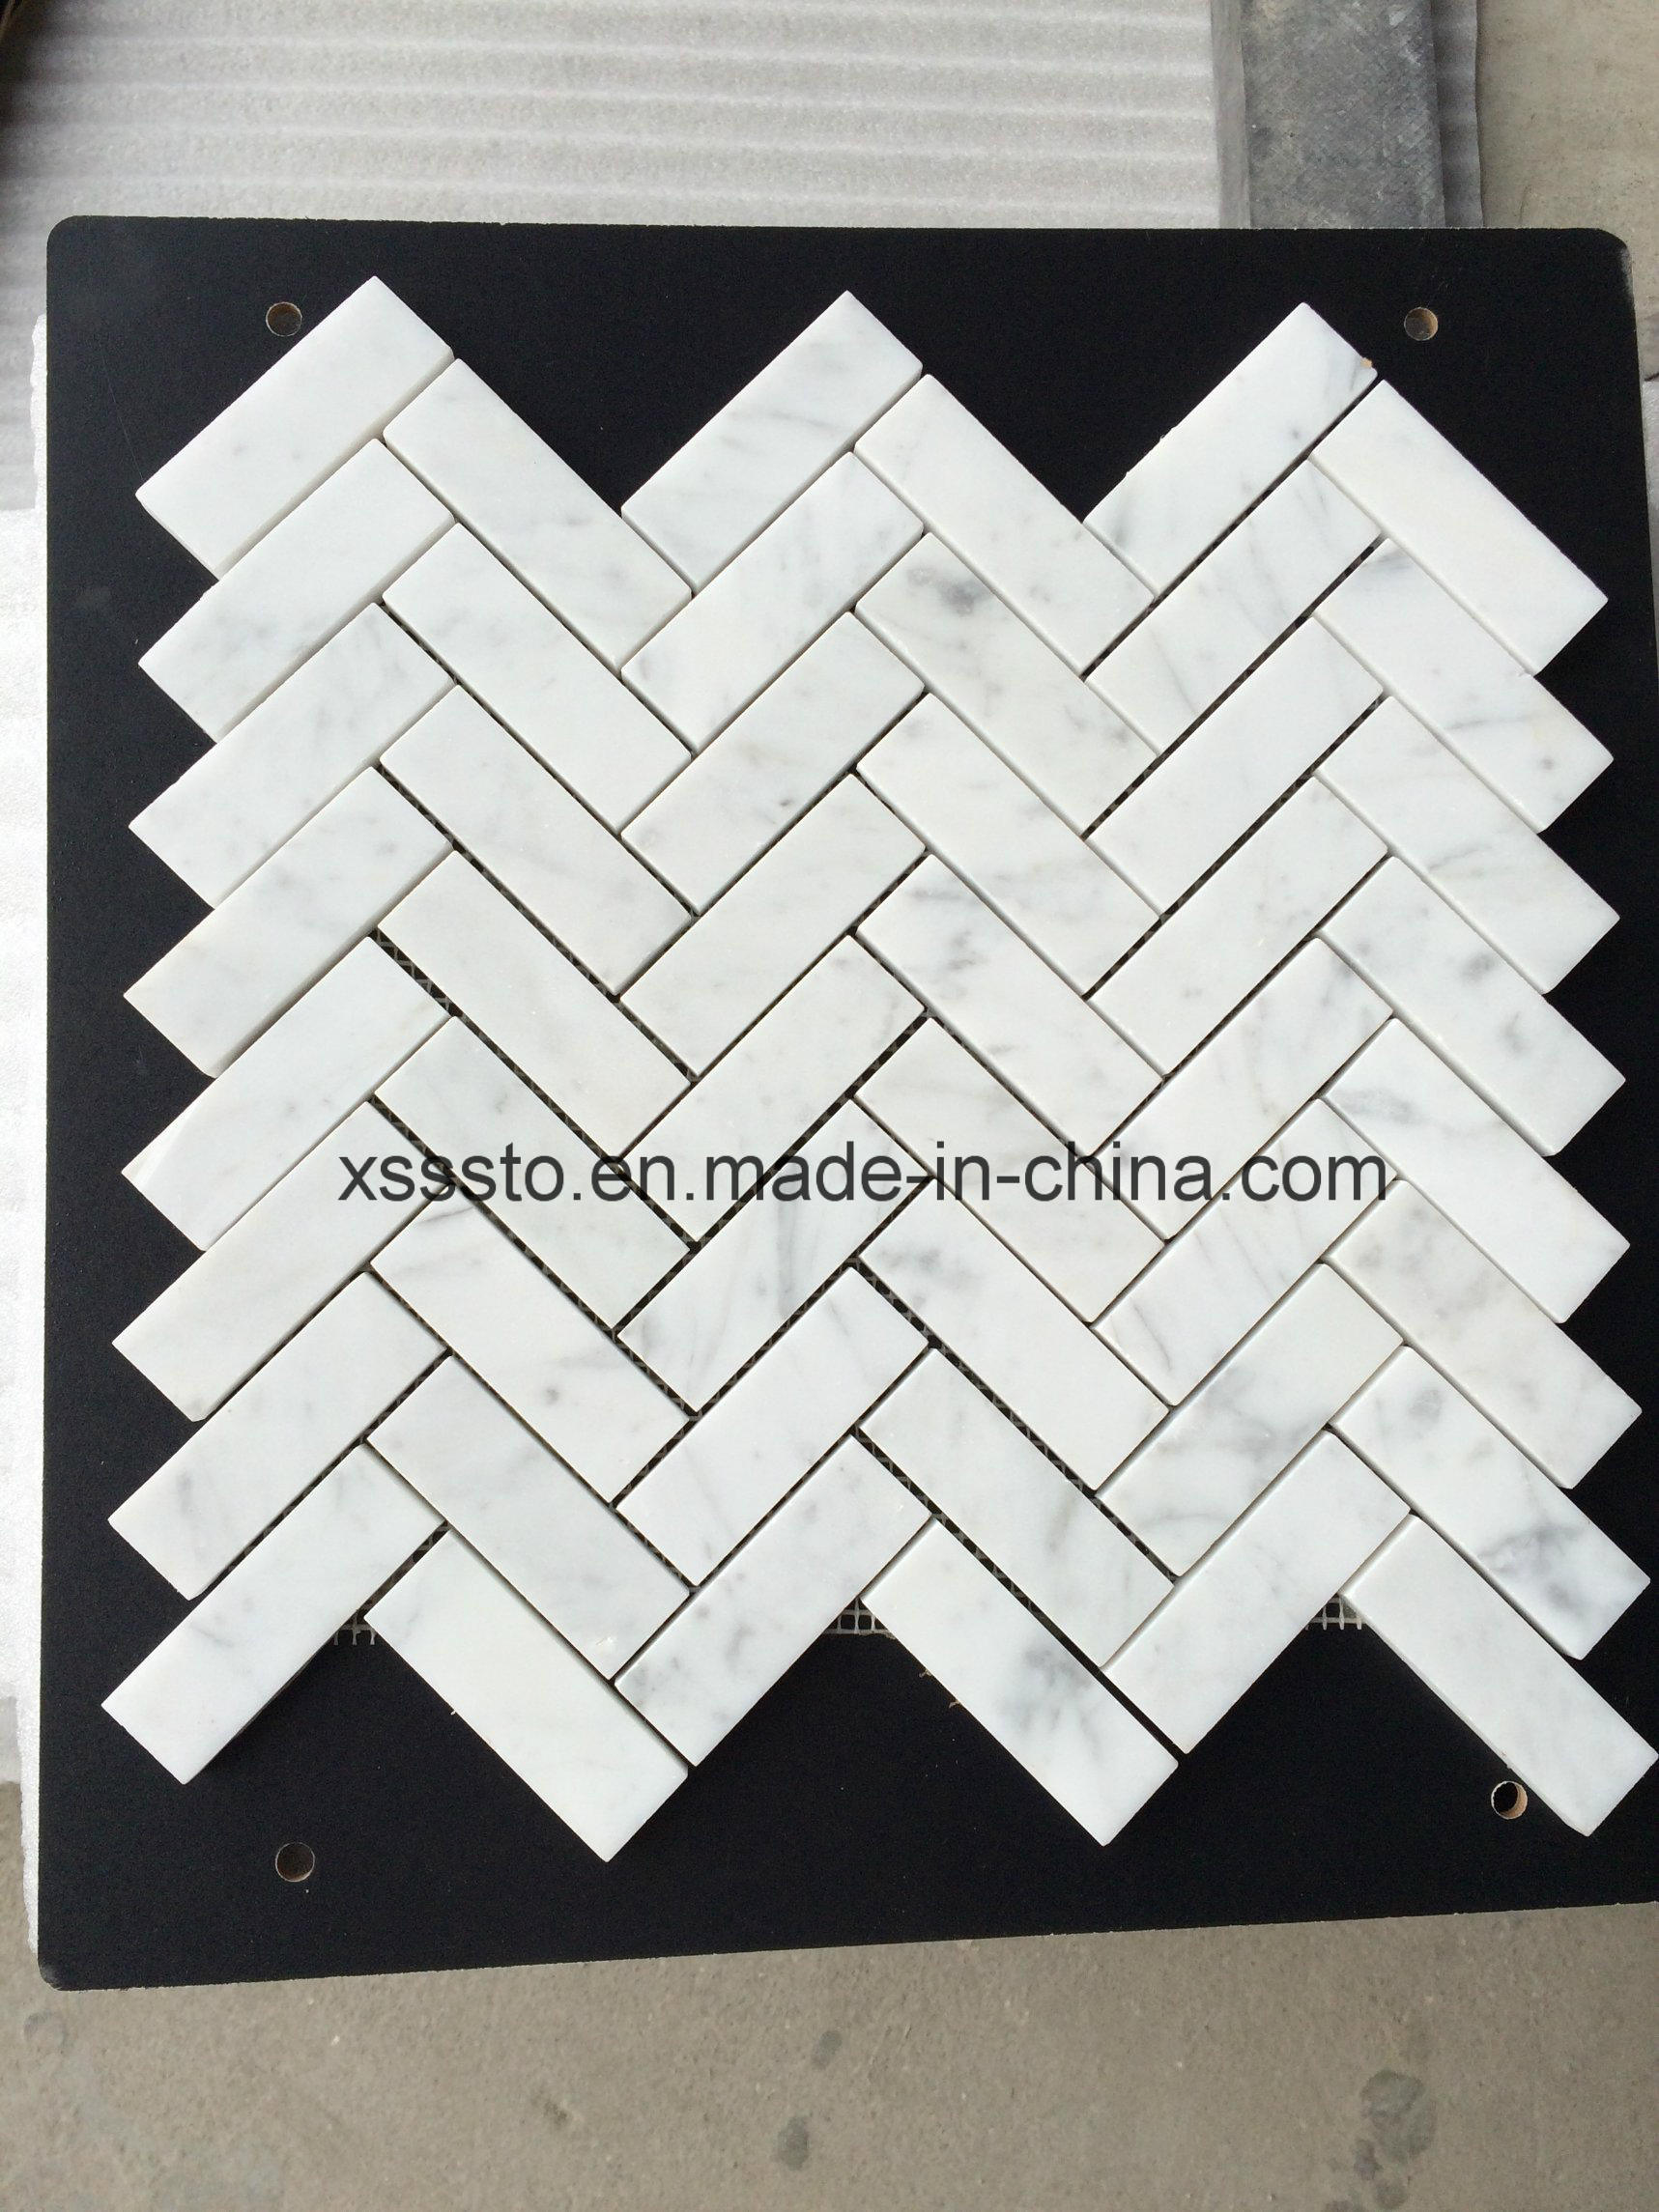 Bianco Carrara White Marble Mosaic Tiles for Kitchen Backsplash & Bathroom